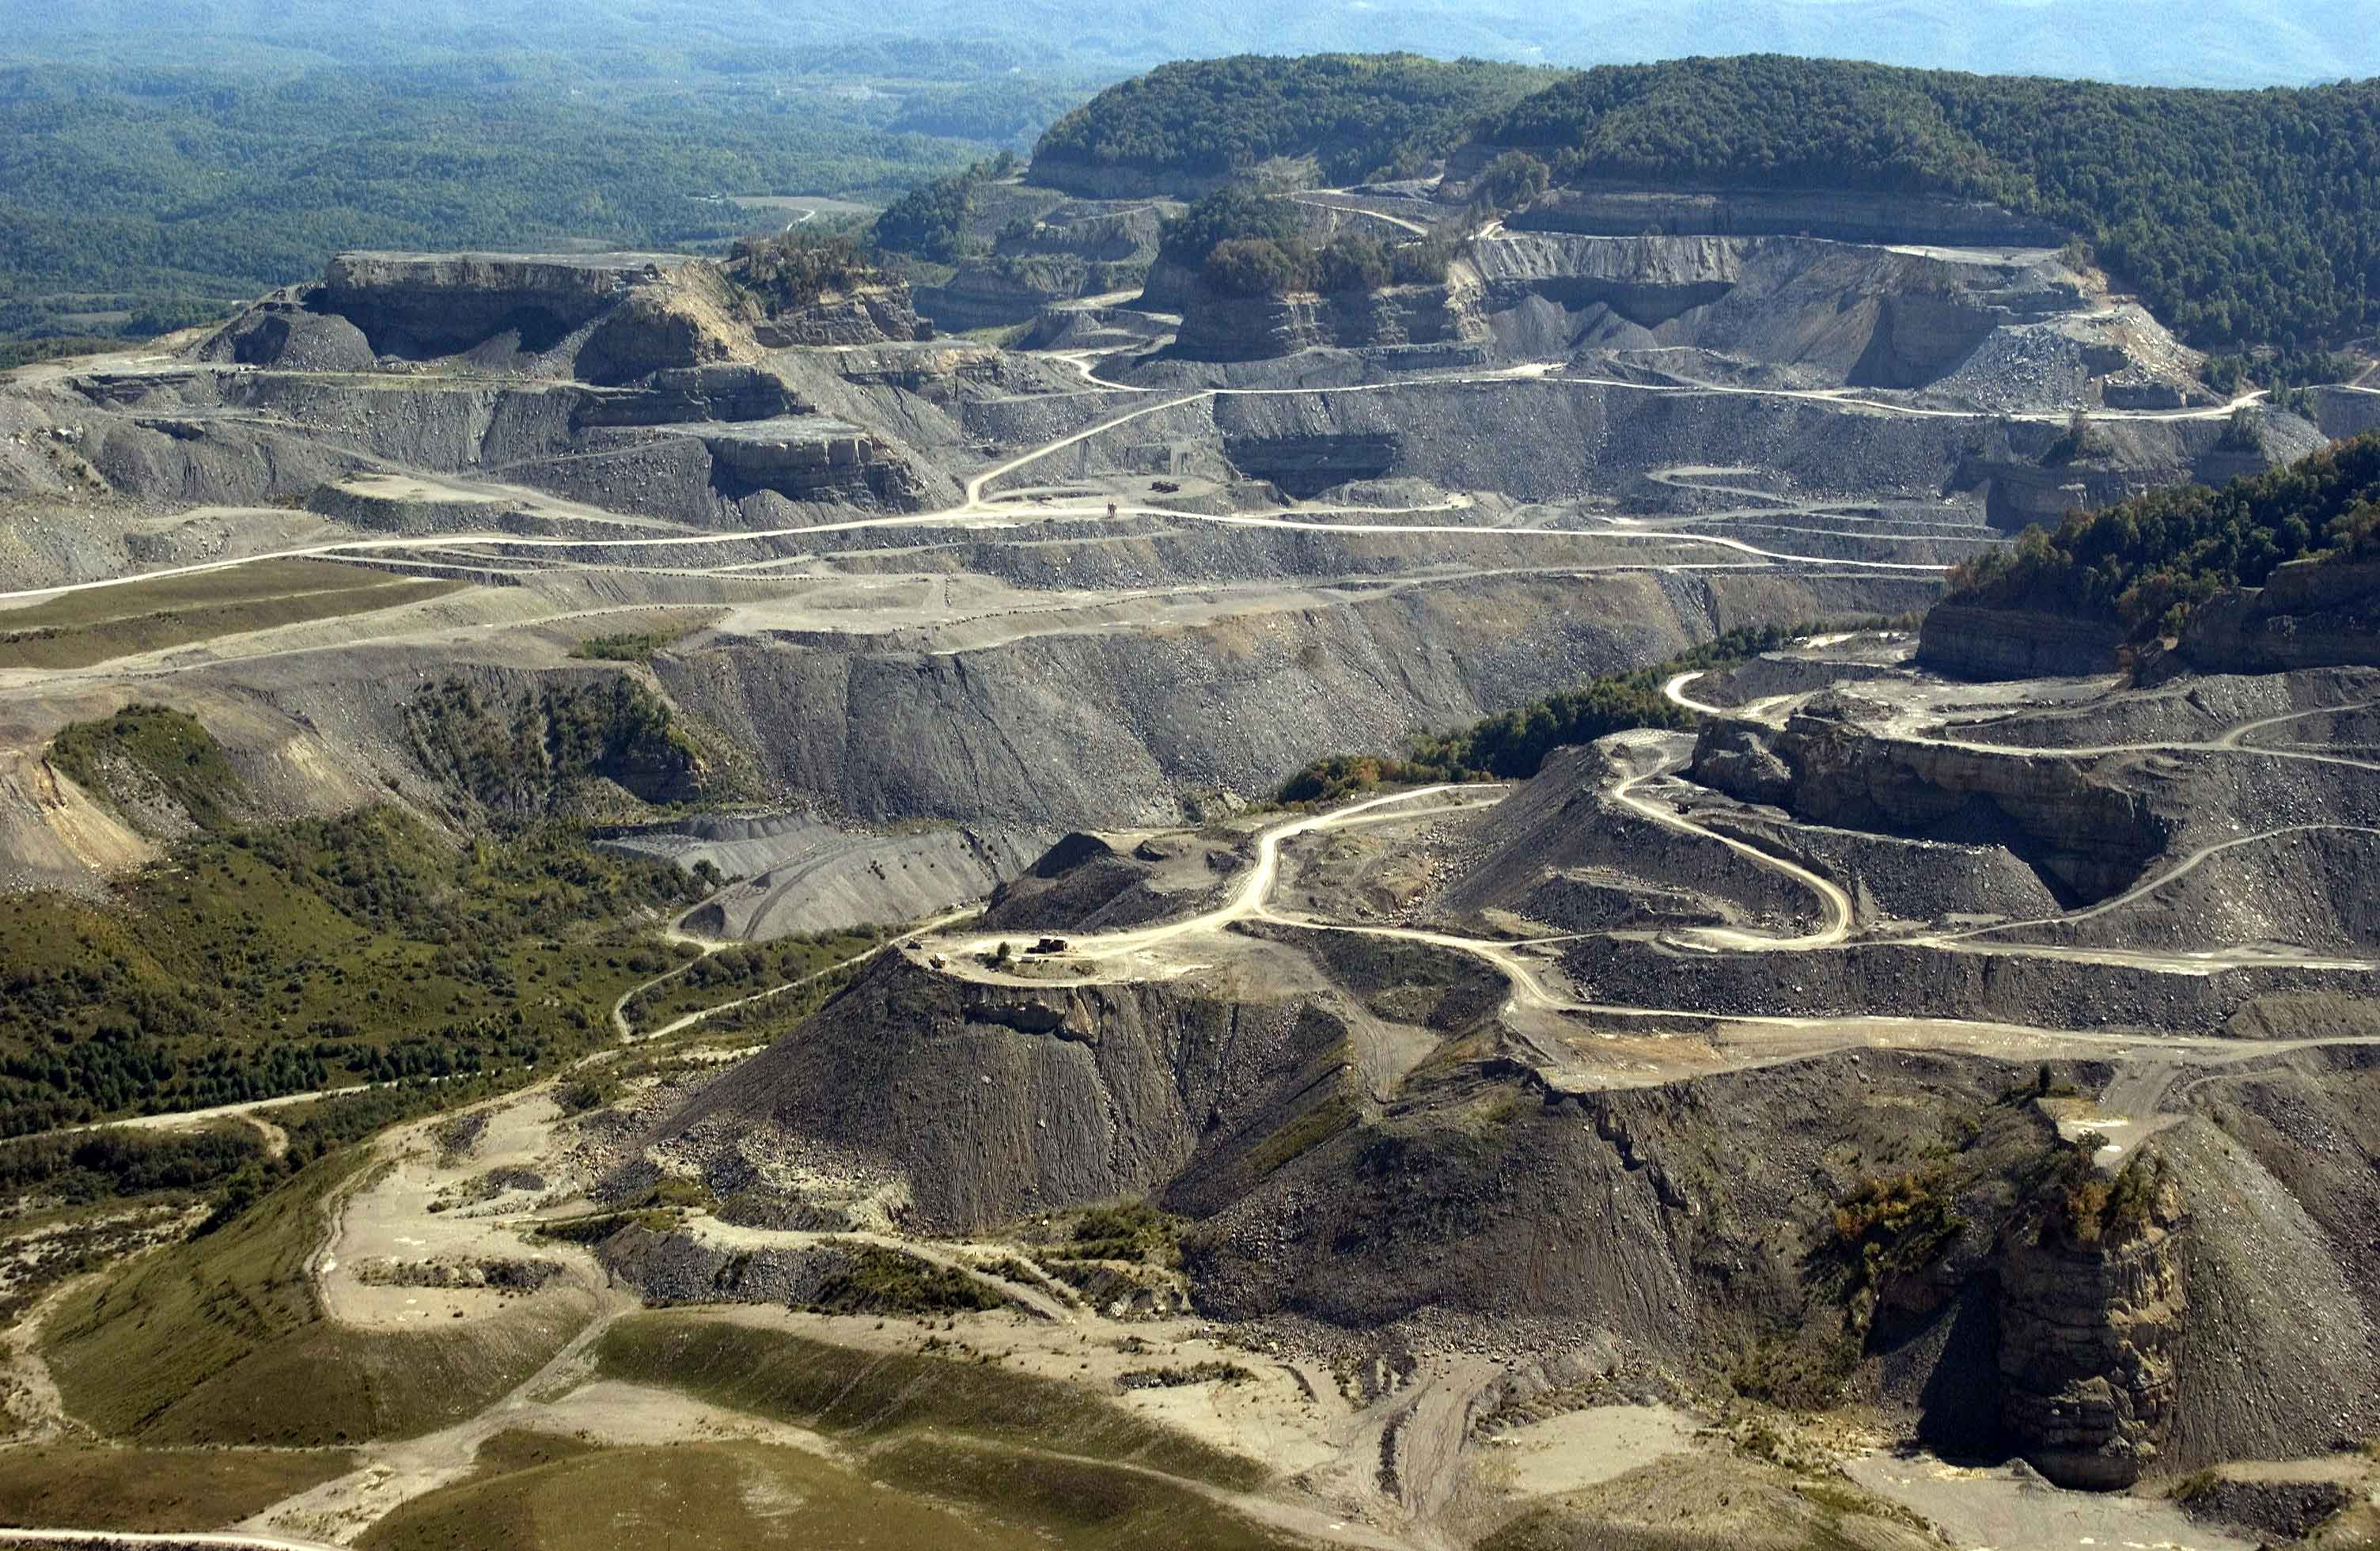 mountaintop removal How mountaintop mining affects life and landscape in west virginia  mountain top removal coal mining in west virginia  that means boosting so-called mountaintop mining but even as many in.